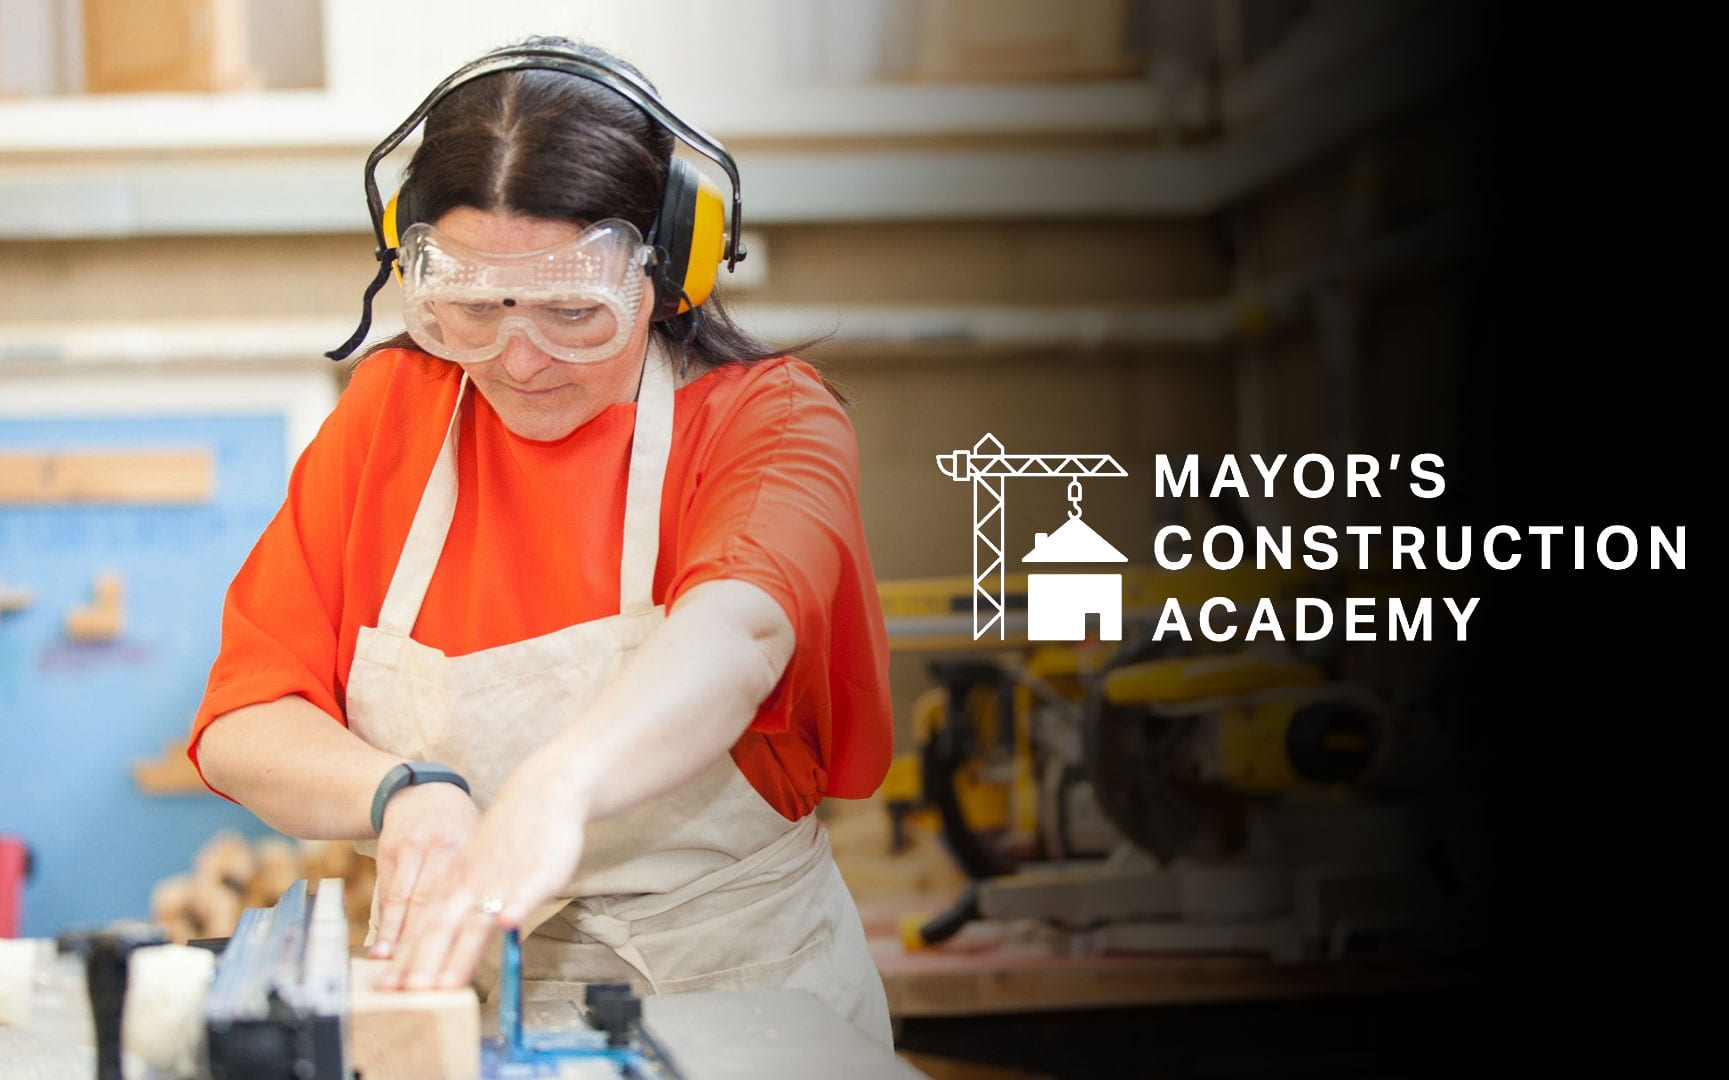 Mayor's Construction Academy